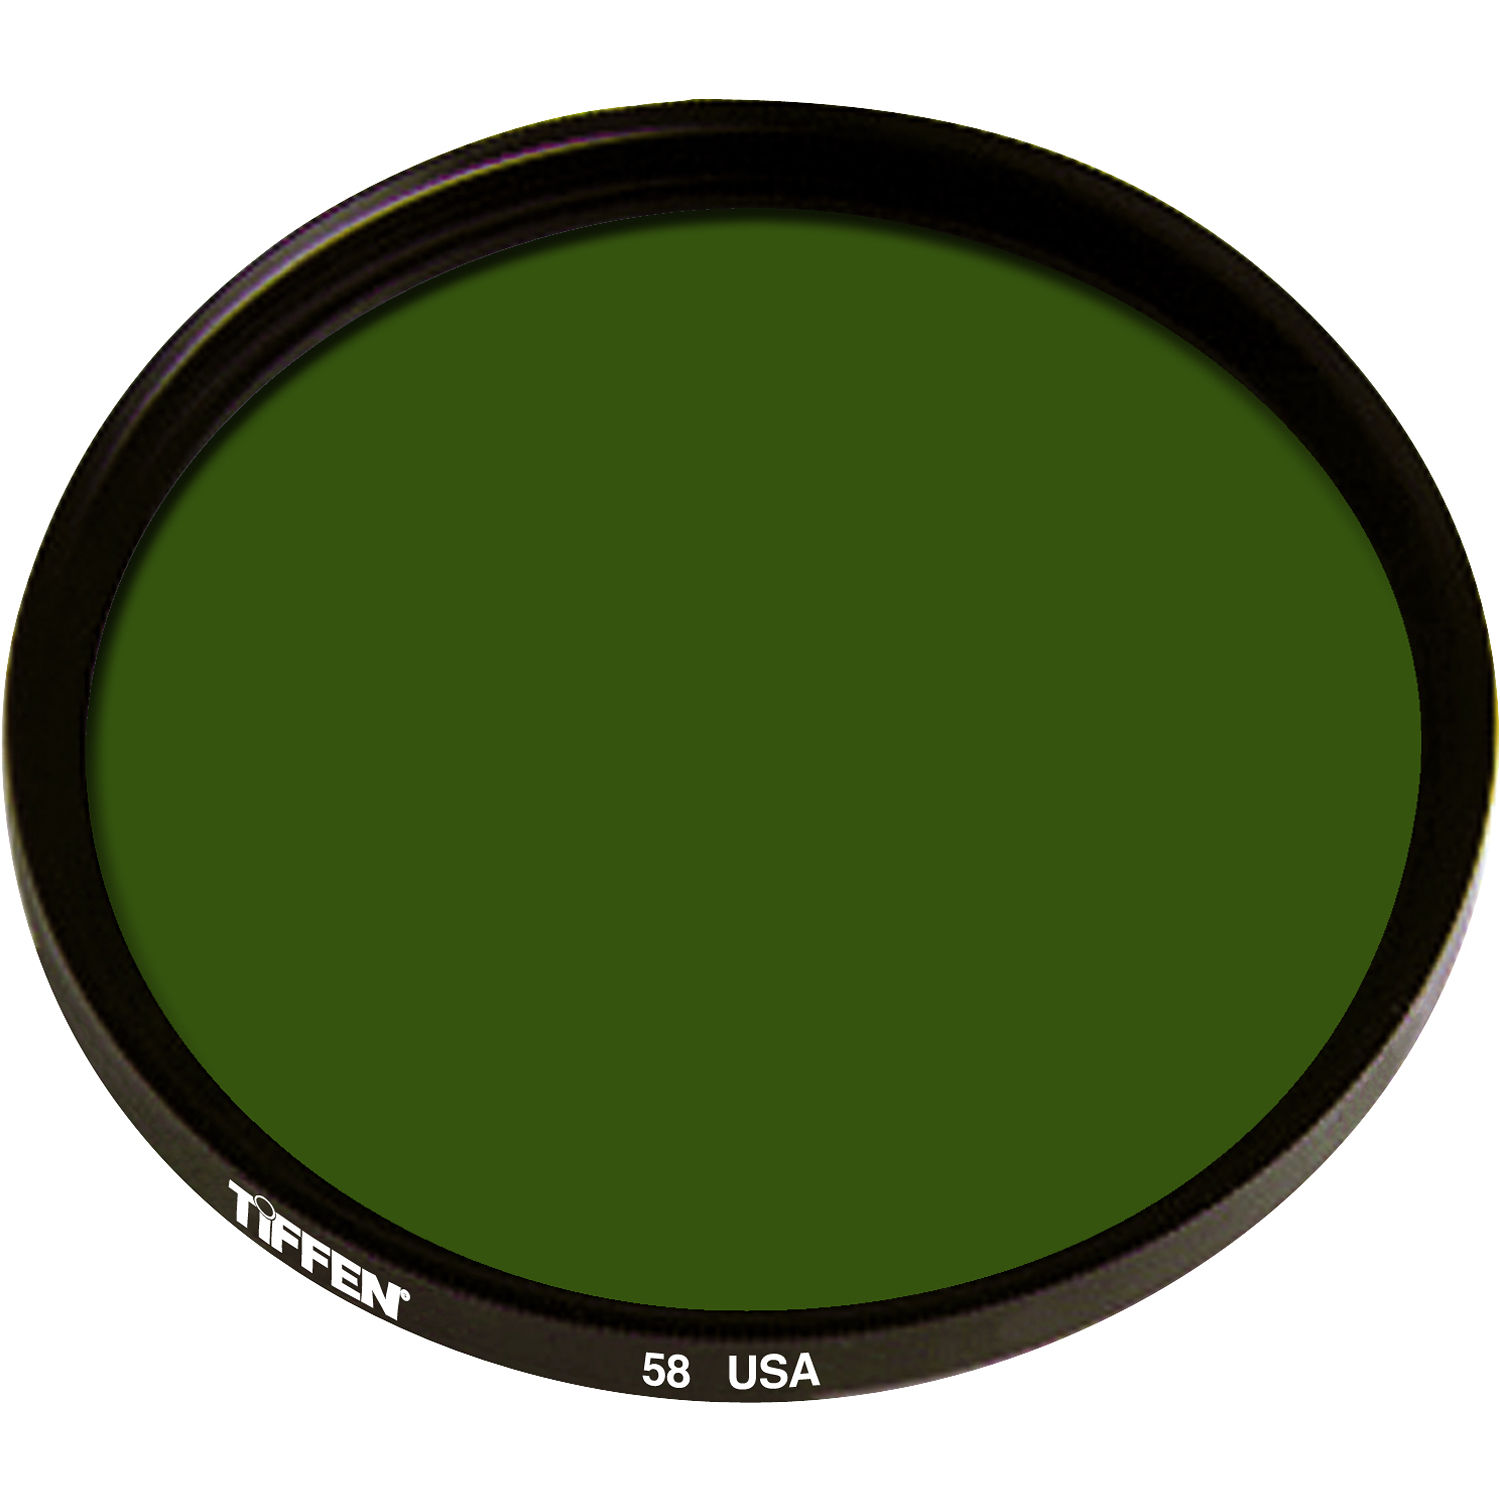 Tiffen 58mm green 58 glass filter for black white film